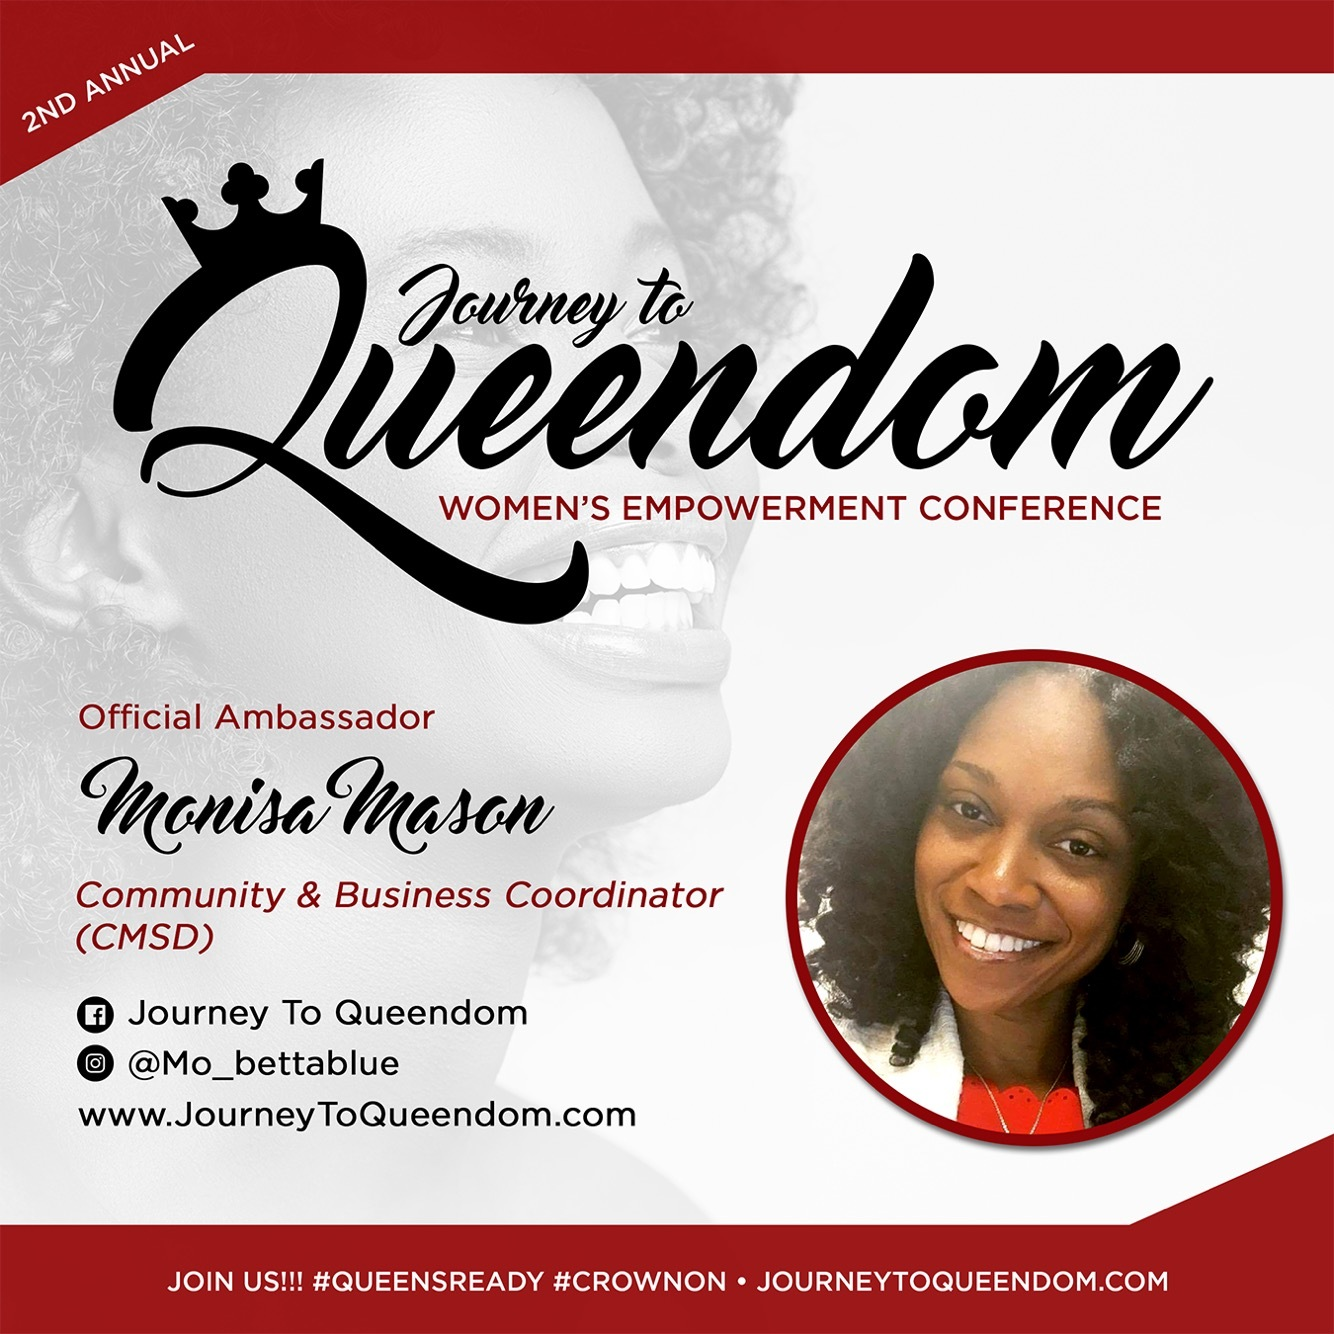 Journey To Queendom Returning Ambassador